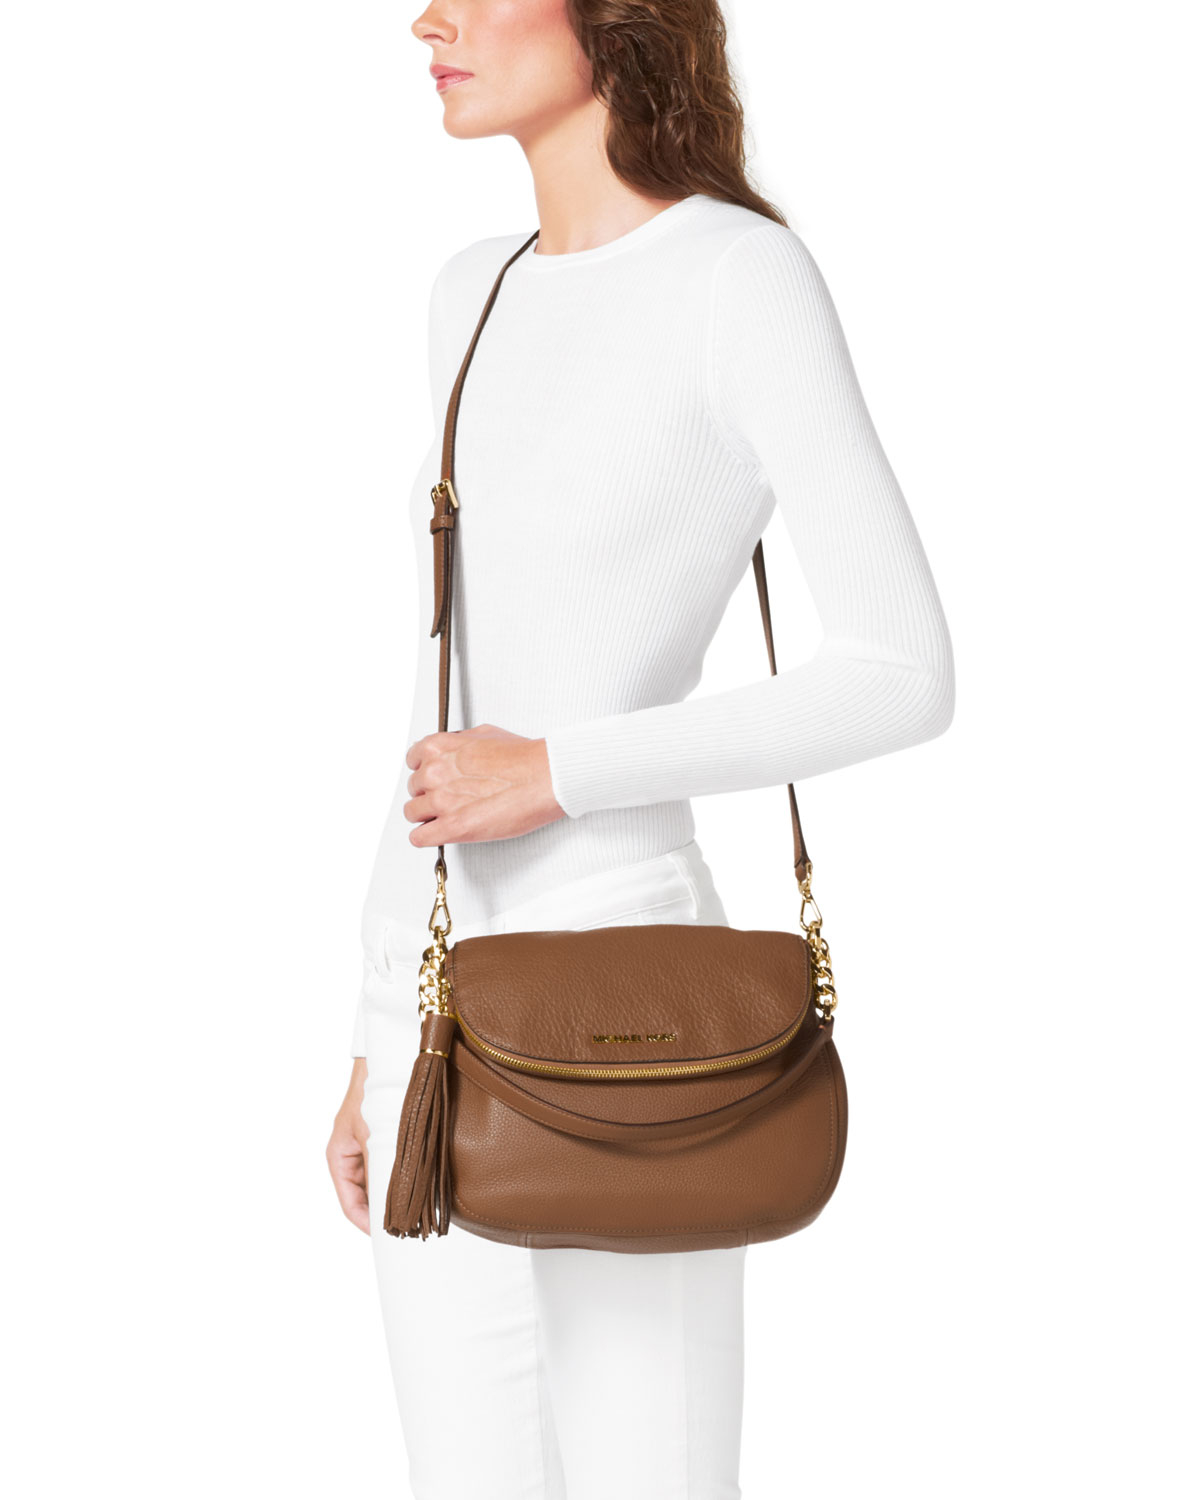 Michael Kors Bedford Medium Tassel